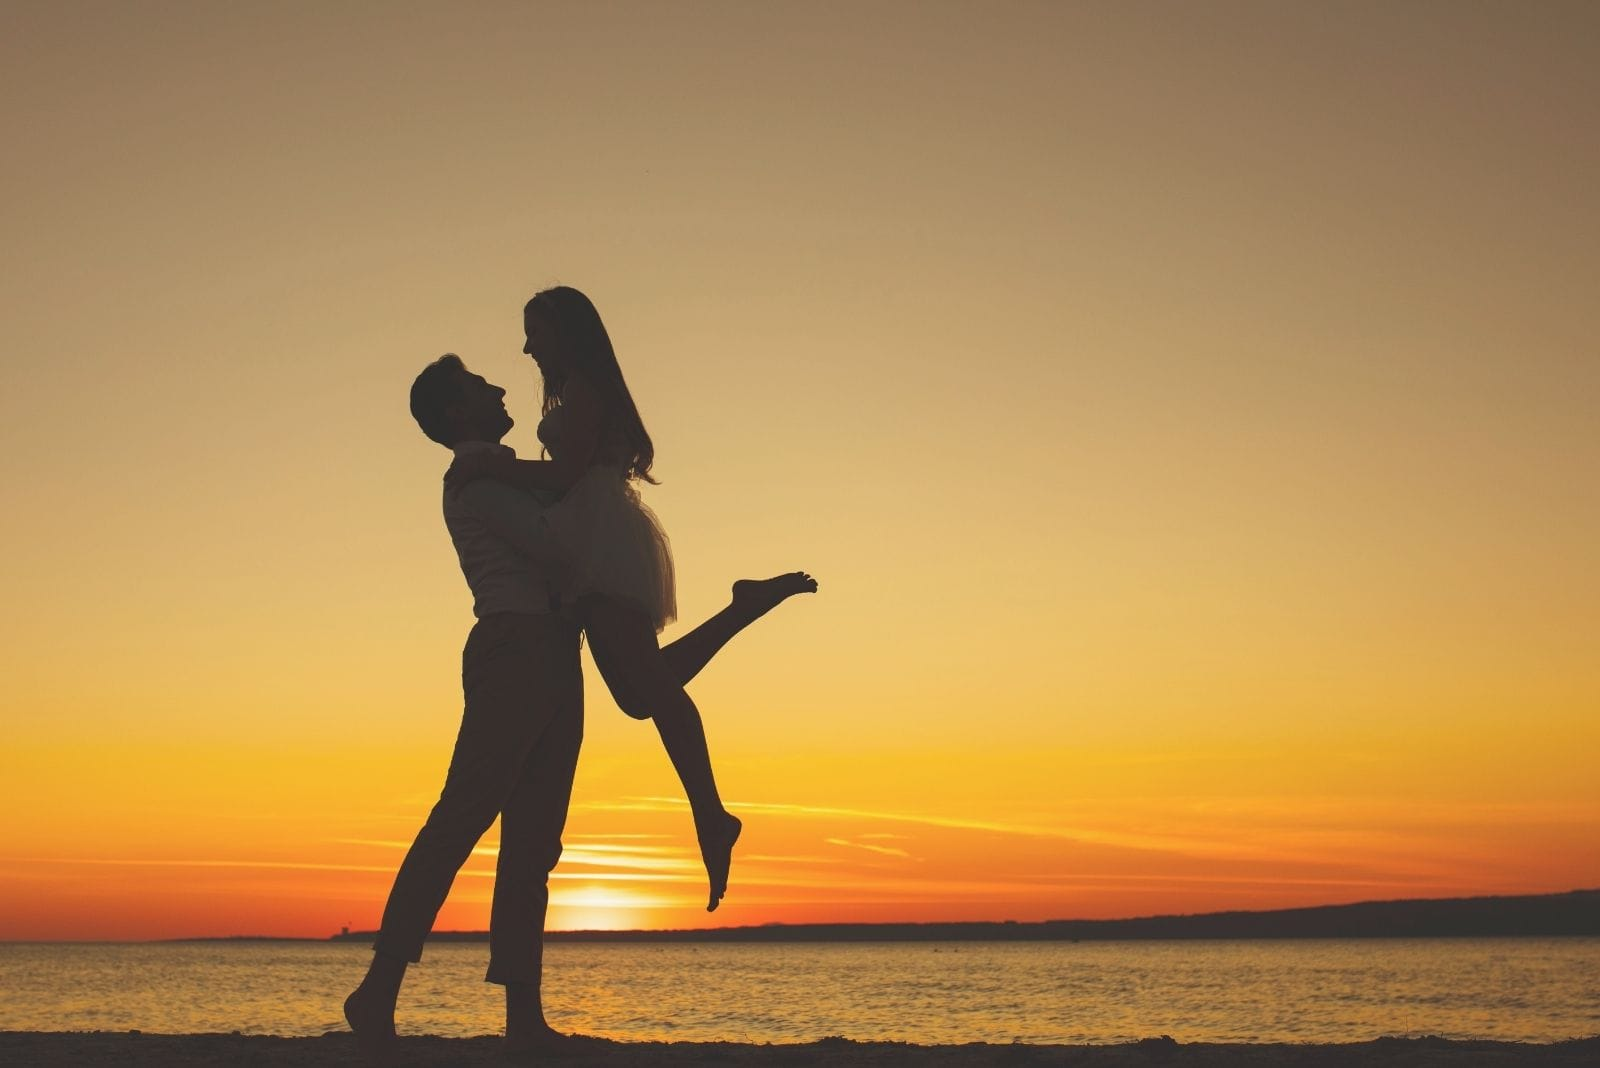 lovely couple in love silhouette during sunrise near a body of water